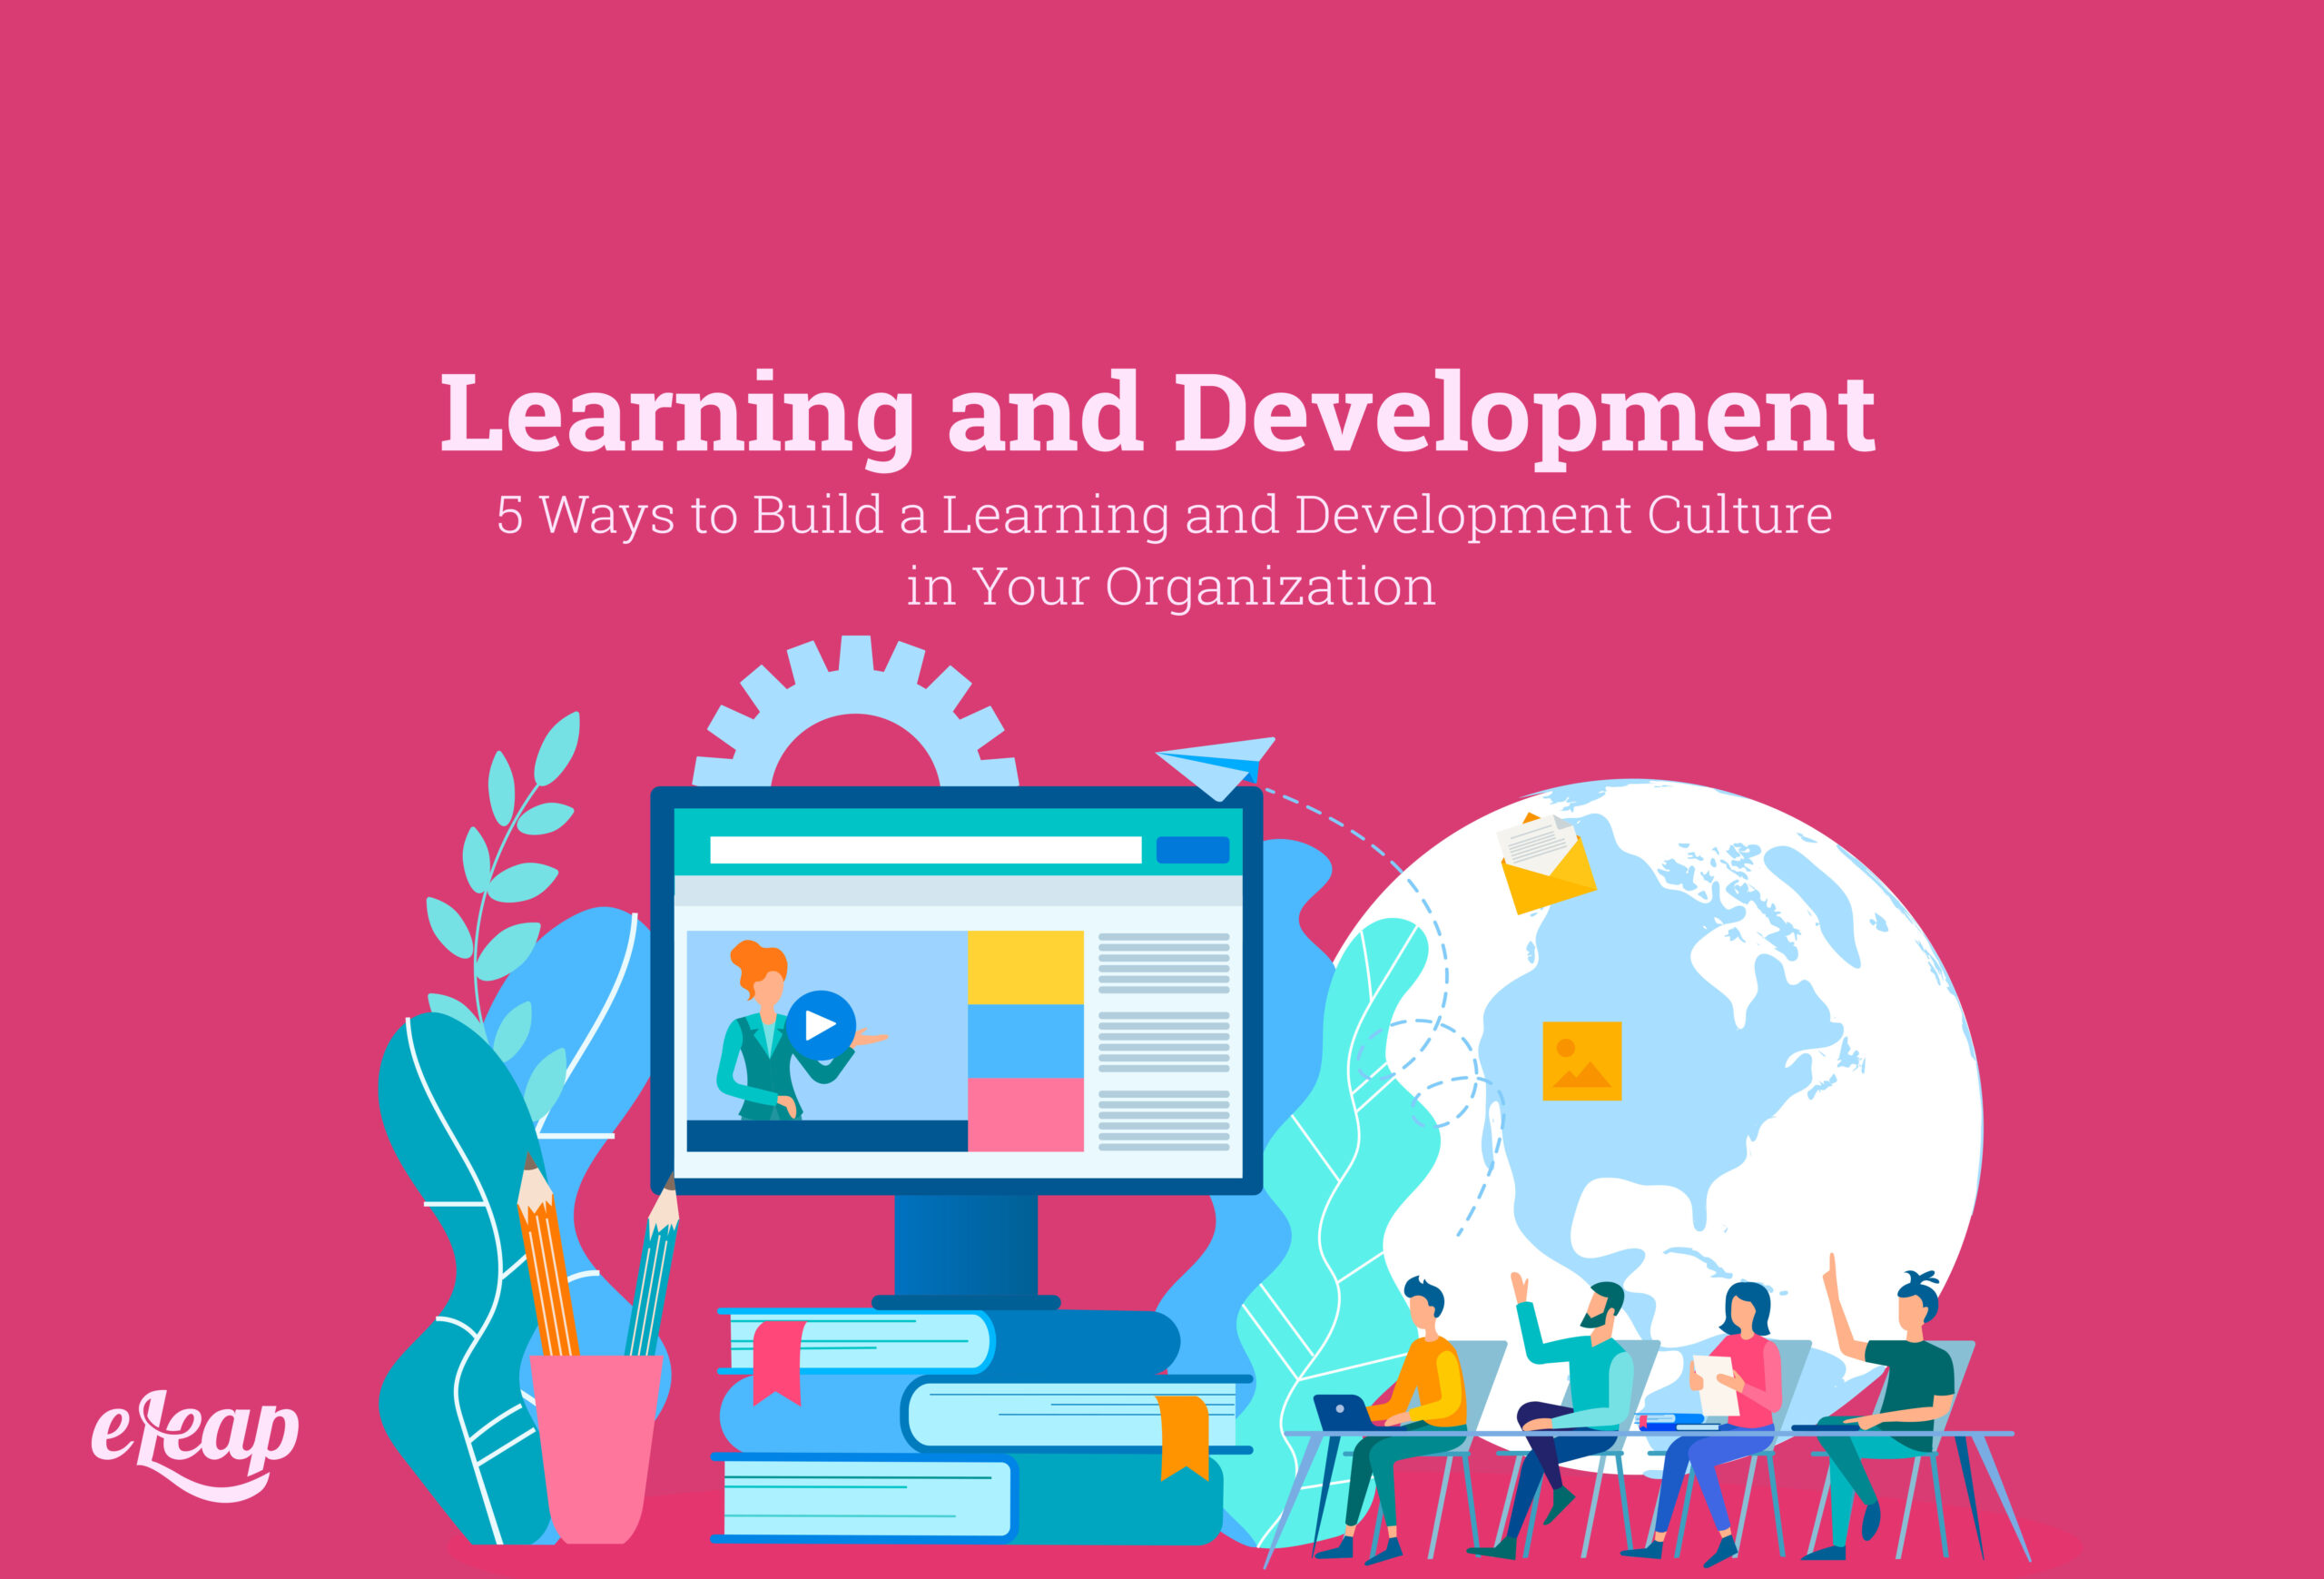 5 Ways to Build a Learning and Development Culture in Your Organization